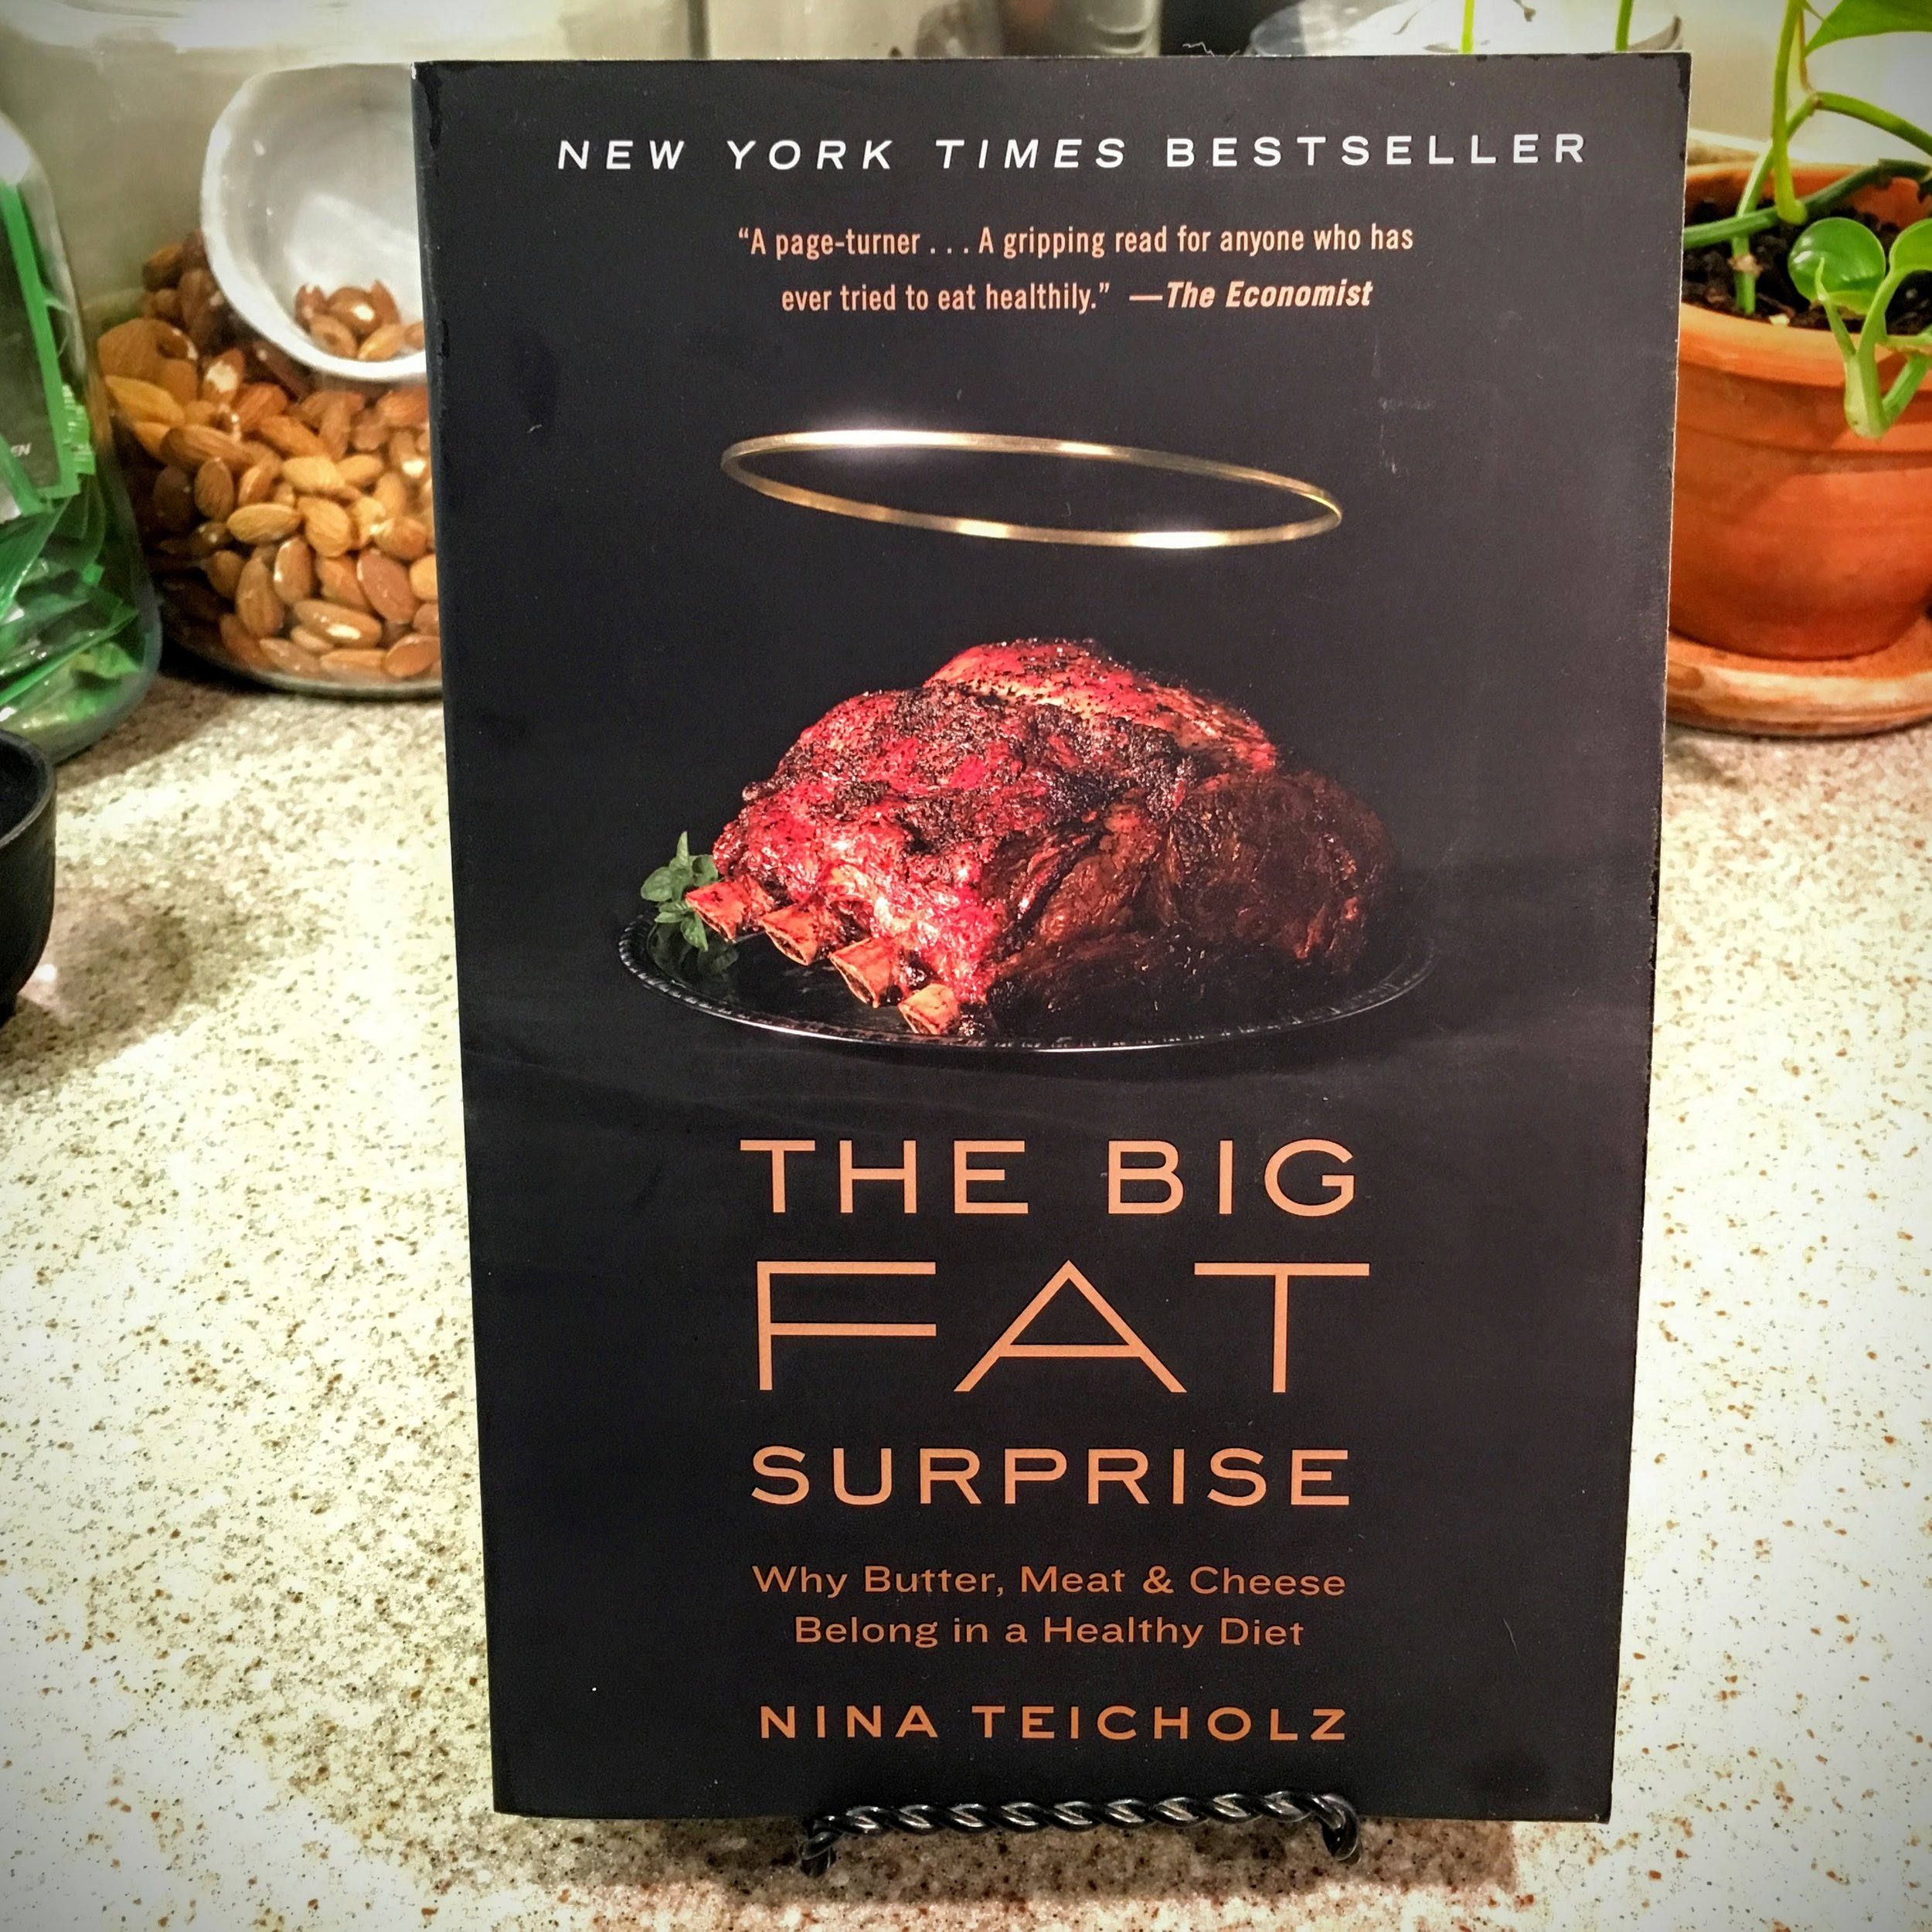 """The big fat surprise   THIS BOOK TAKES UP WHERE """"GOOD CALORIES, BAD CALORIES"""" LEFT OFF. MORE INFORMATION ABOUT THE SHODDY SCIENCE AND BLIND ACCEPTANCE IT THAT HAS BEEN THE HALLMARK OF NUTRITIONAL ADVISE."""